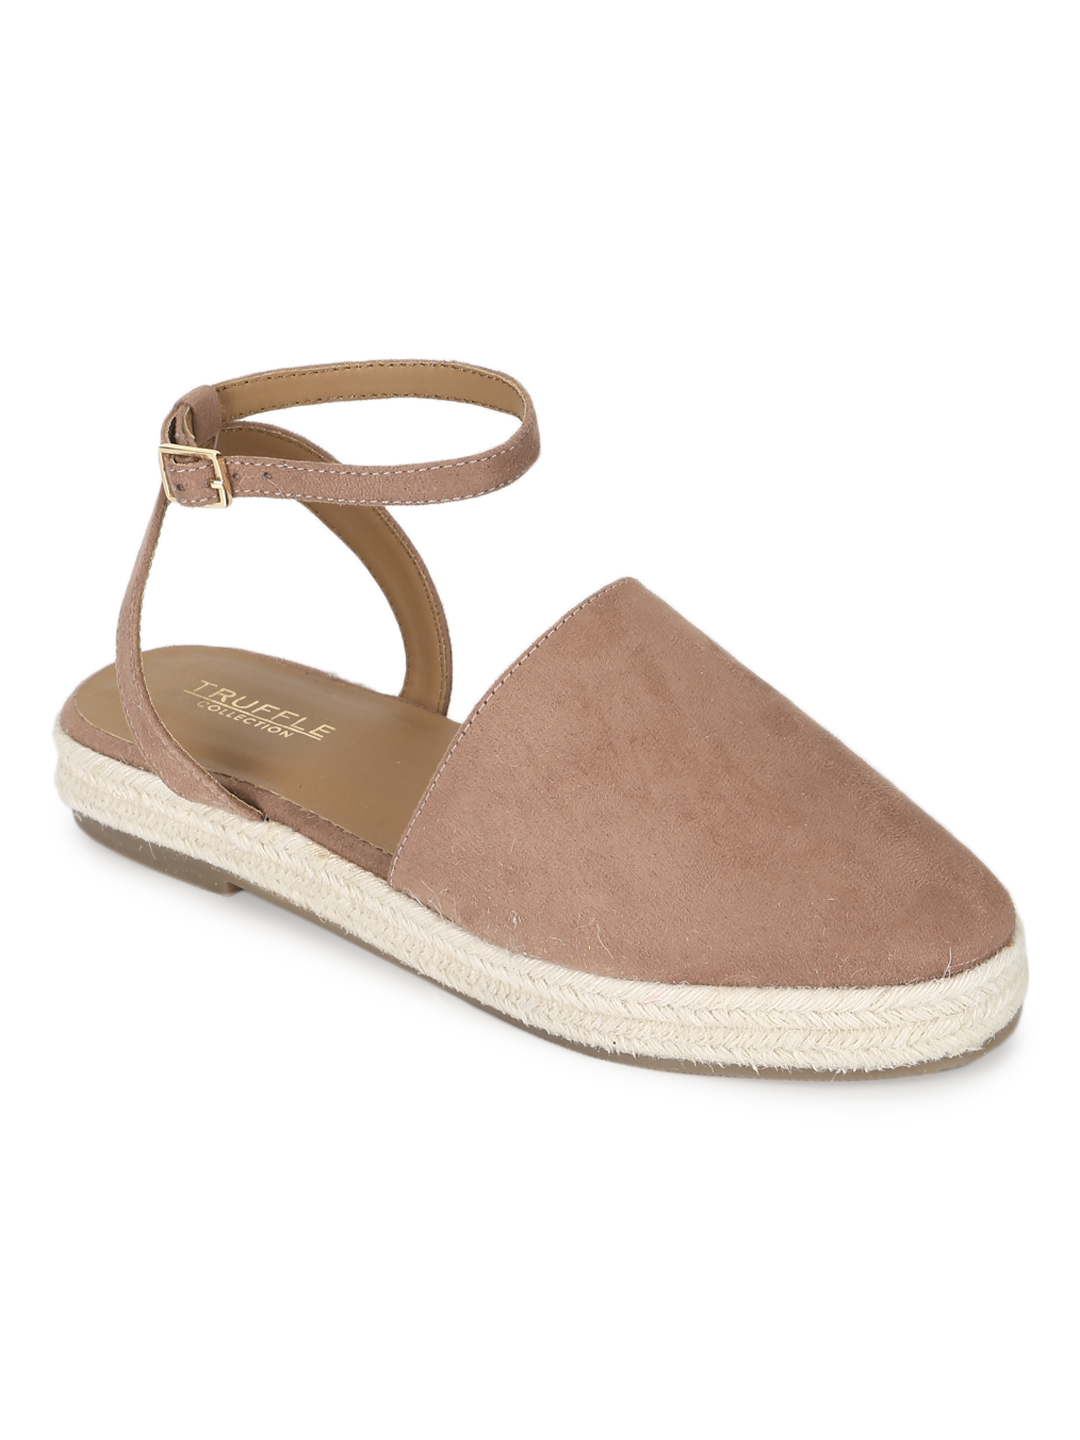 Truffle Collection   Truffle Collection Nude Micro Flat Espadrille Sandals